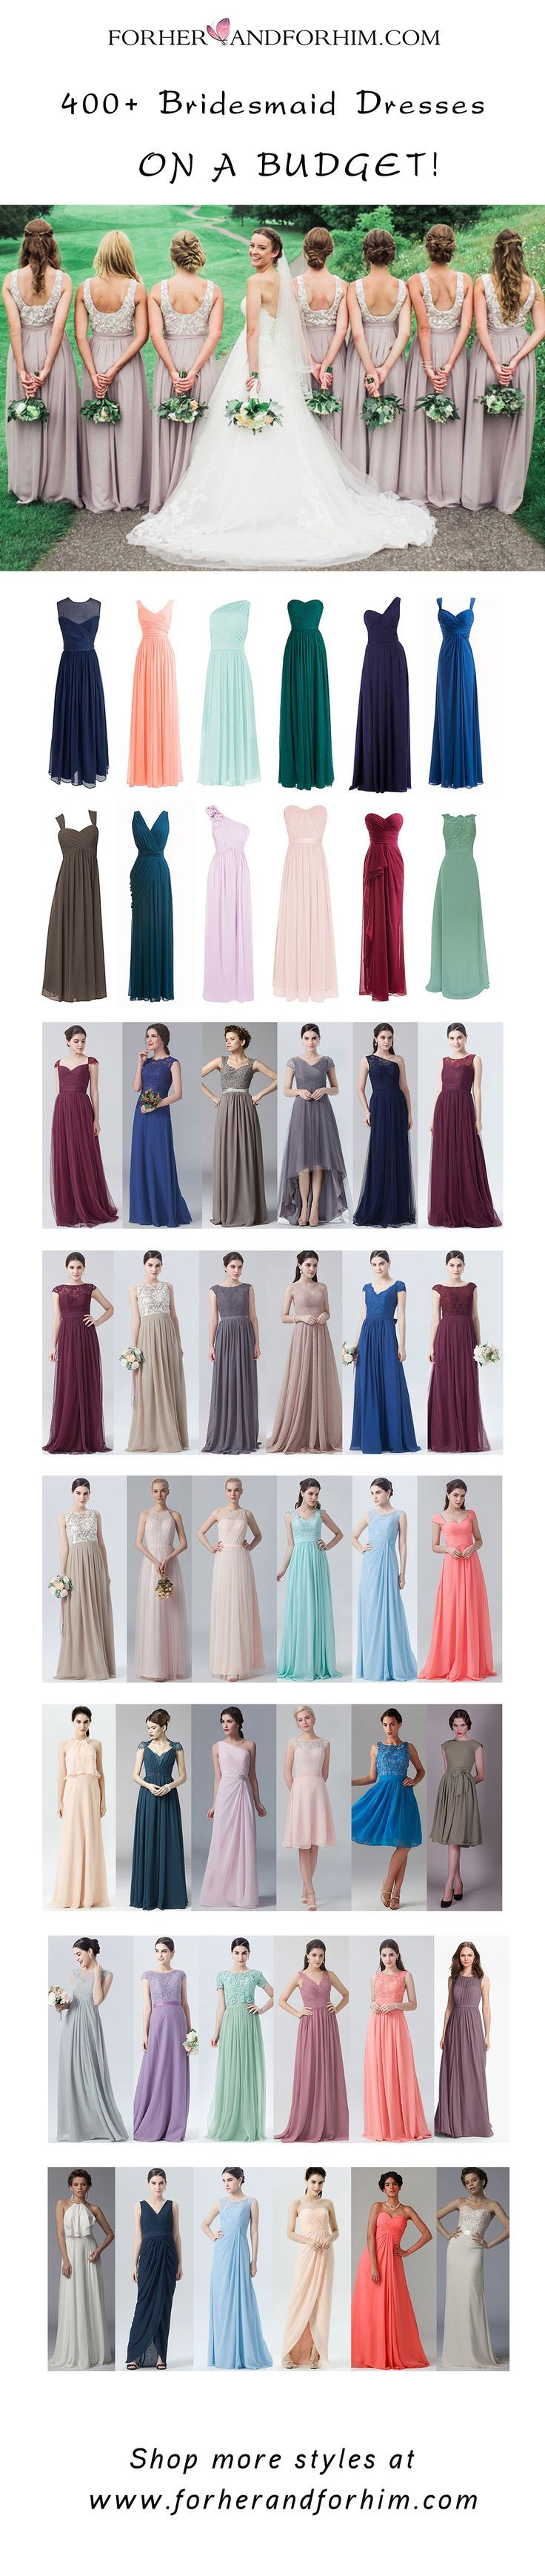 Up to 30% off ALL bridesmaid dresses & FREE U.S Delivery! ONLY IN SEP!